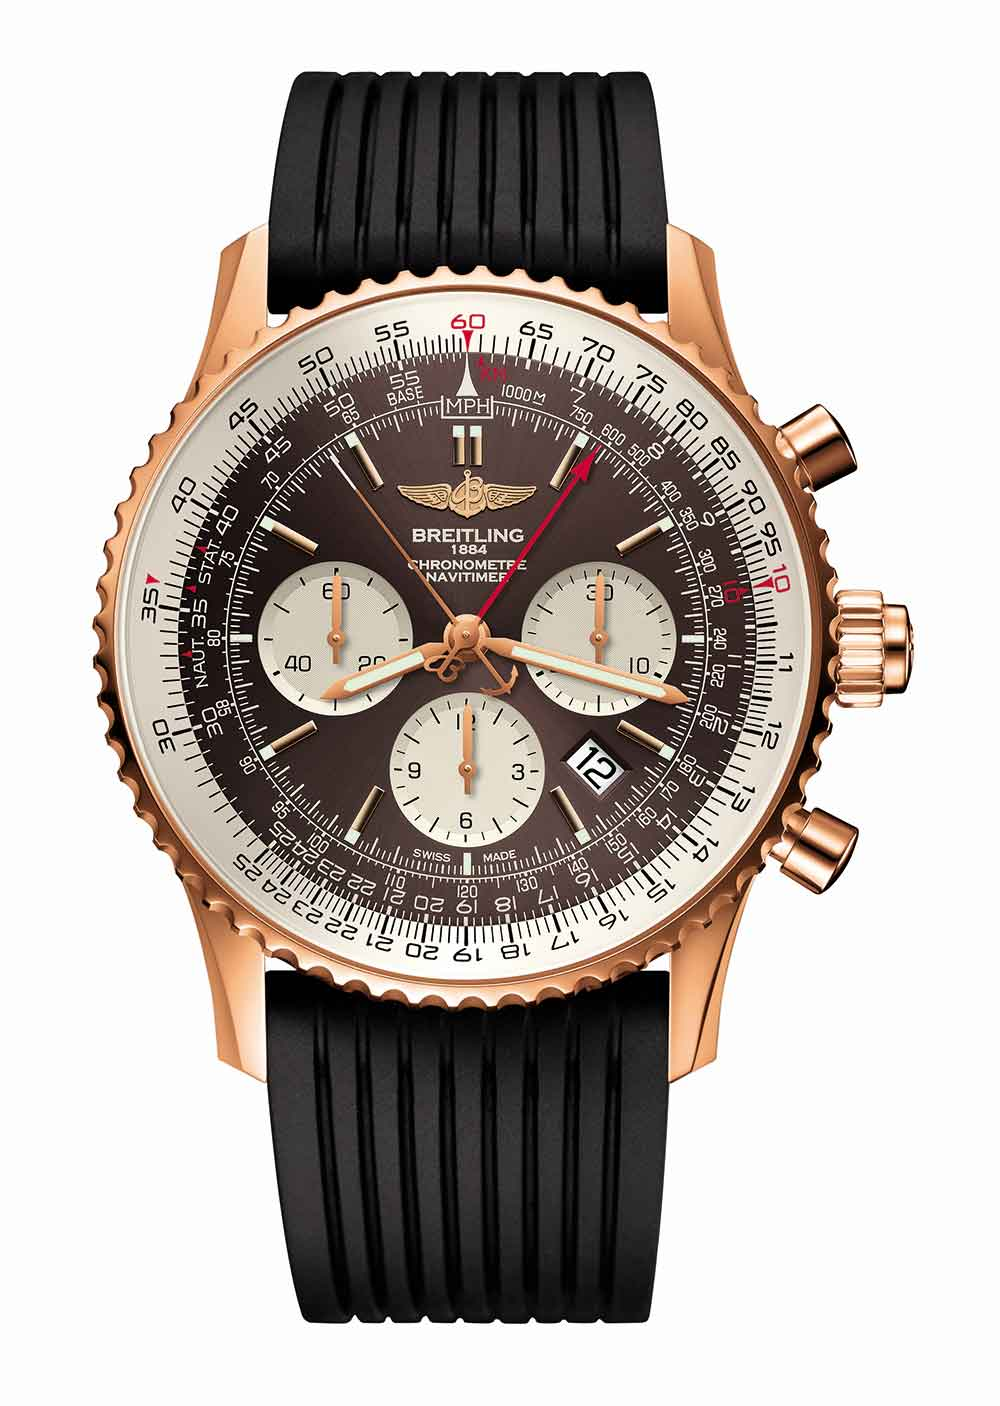 Breitling Navitimer Rattrapante gold, rubber strap